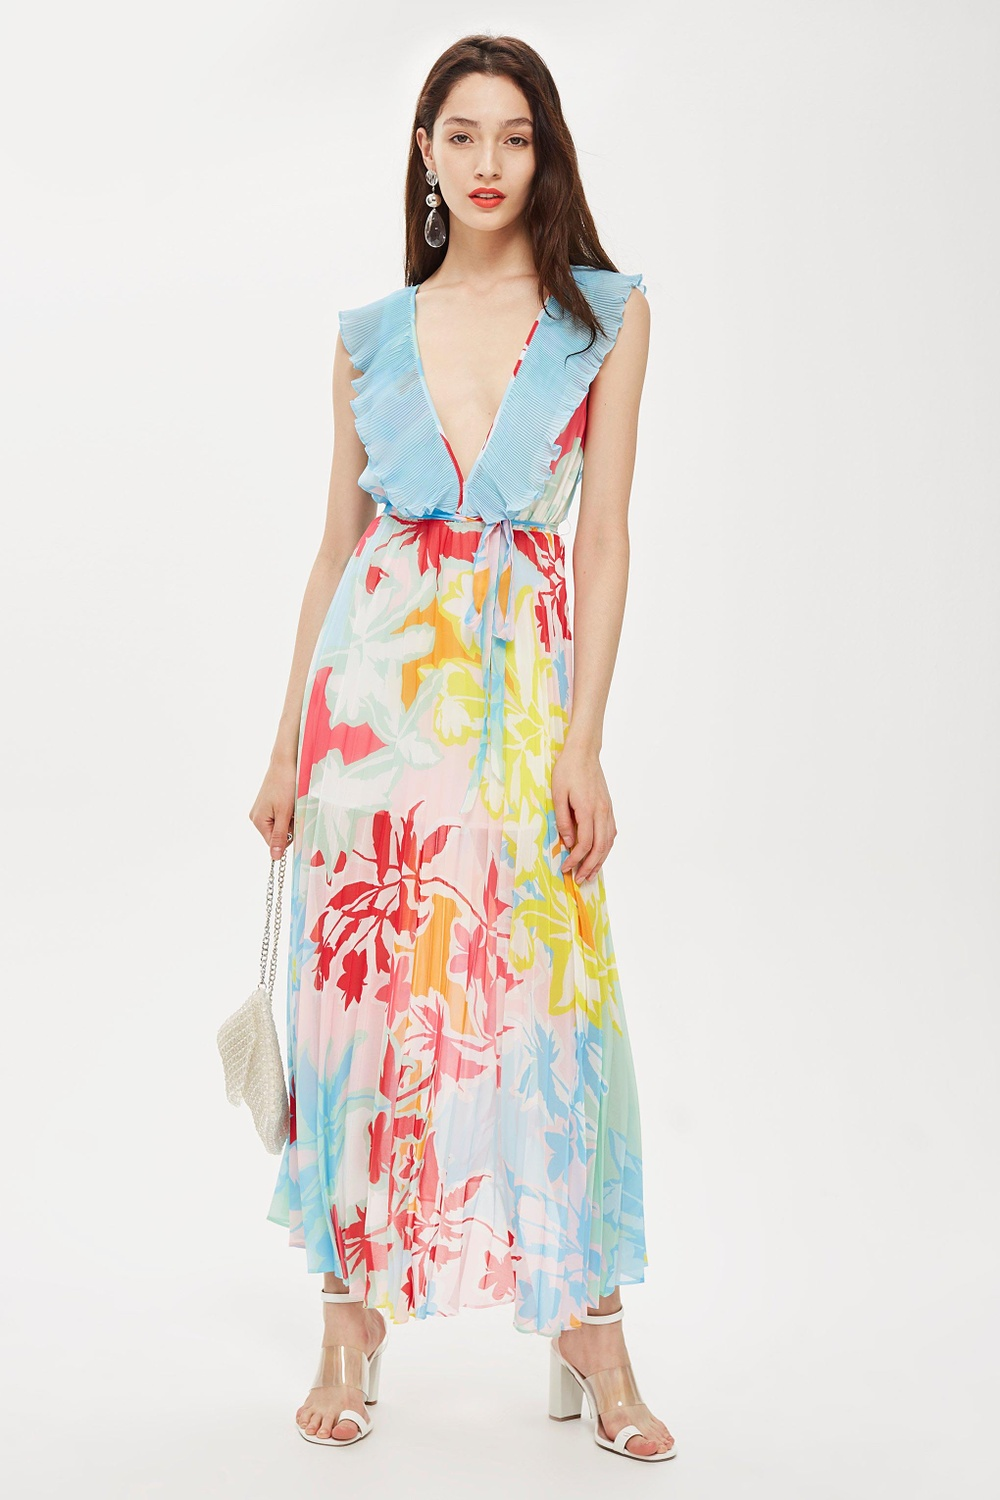 TOPSHOP Paradise Plunge Maxi Printed Dresses Multi Paradise Plunge Maxi